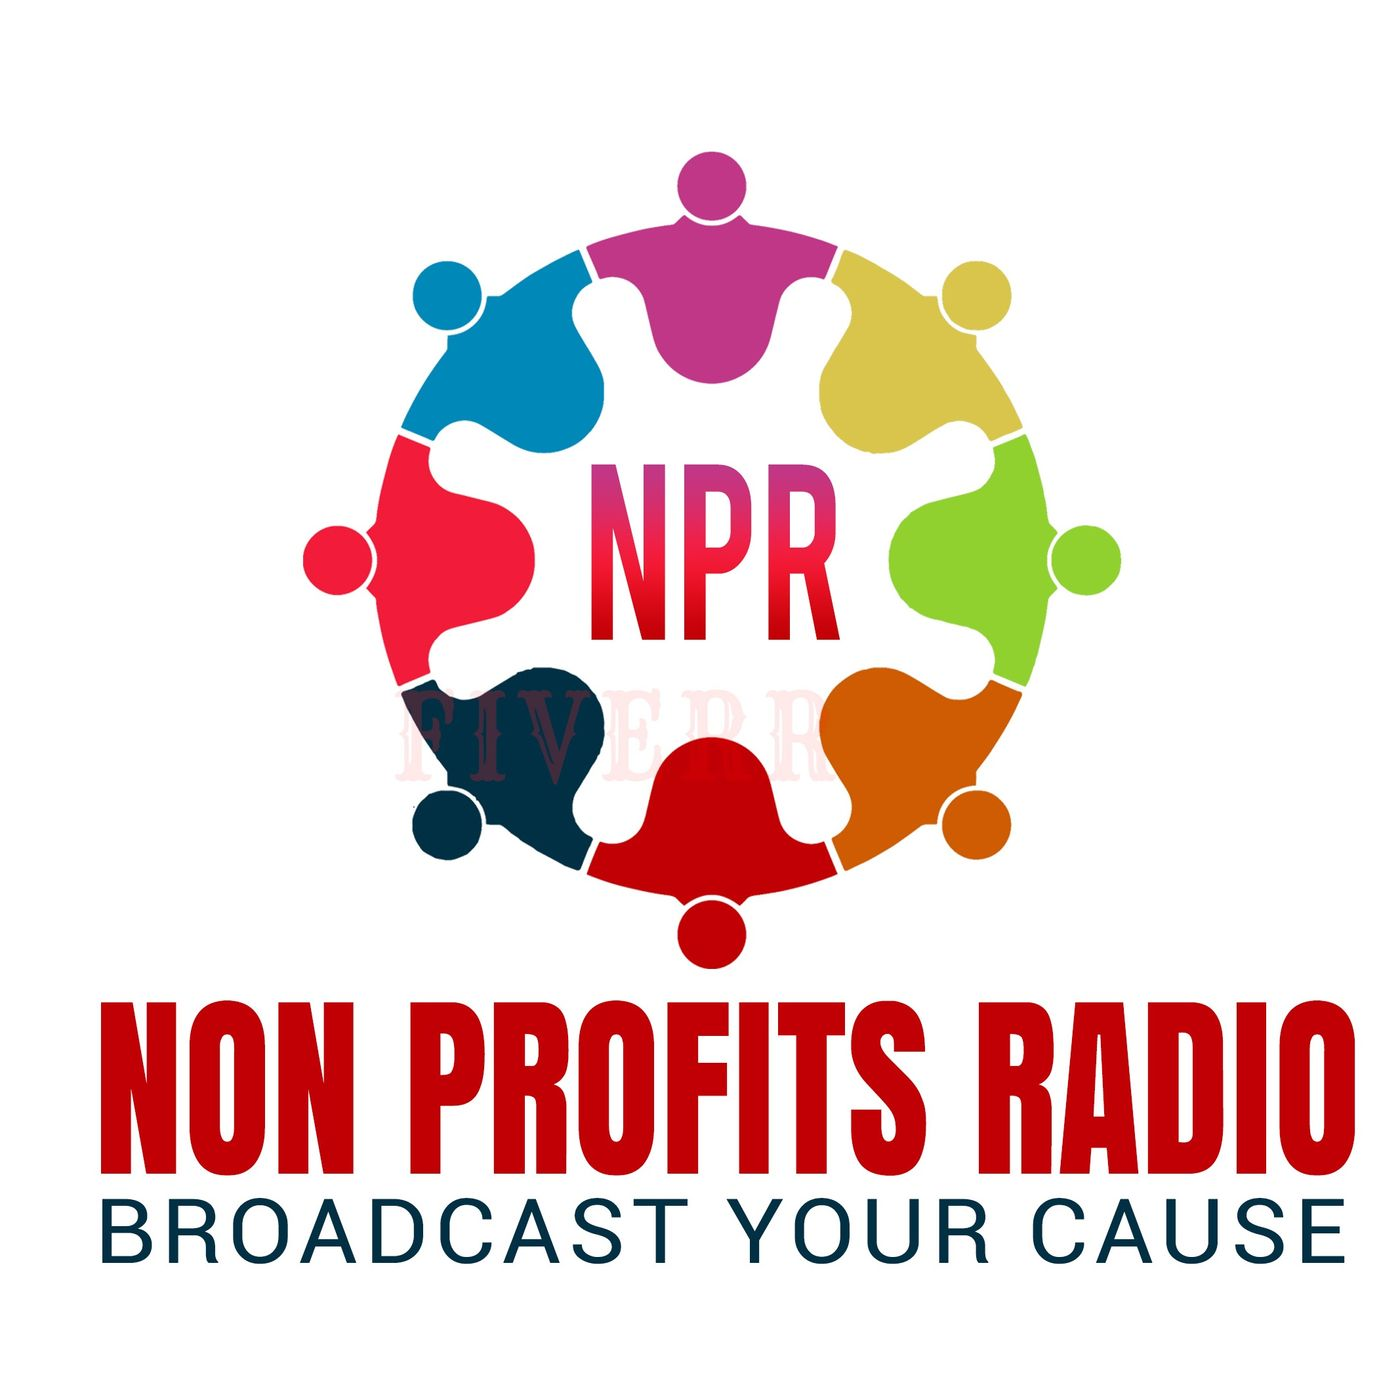 TurningPoint Breast Cancer Rehabilitation and Georgia Police K9 Foundation on Non Profits Radio